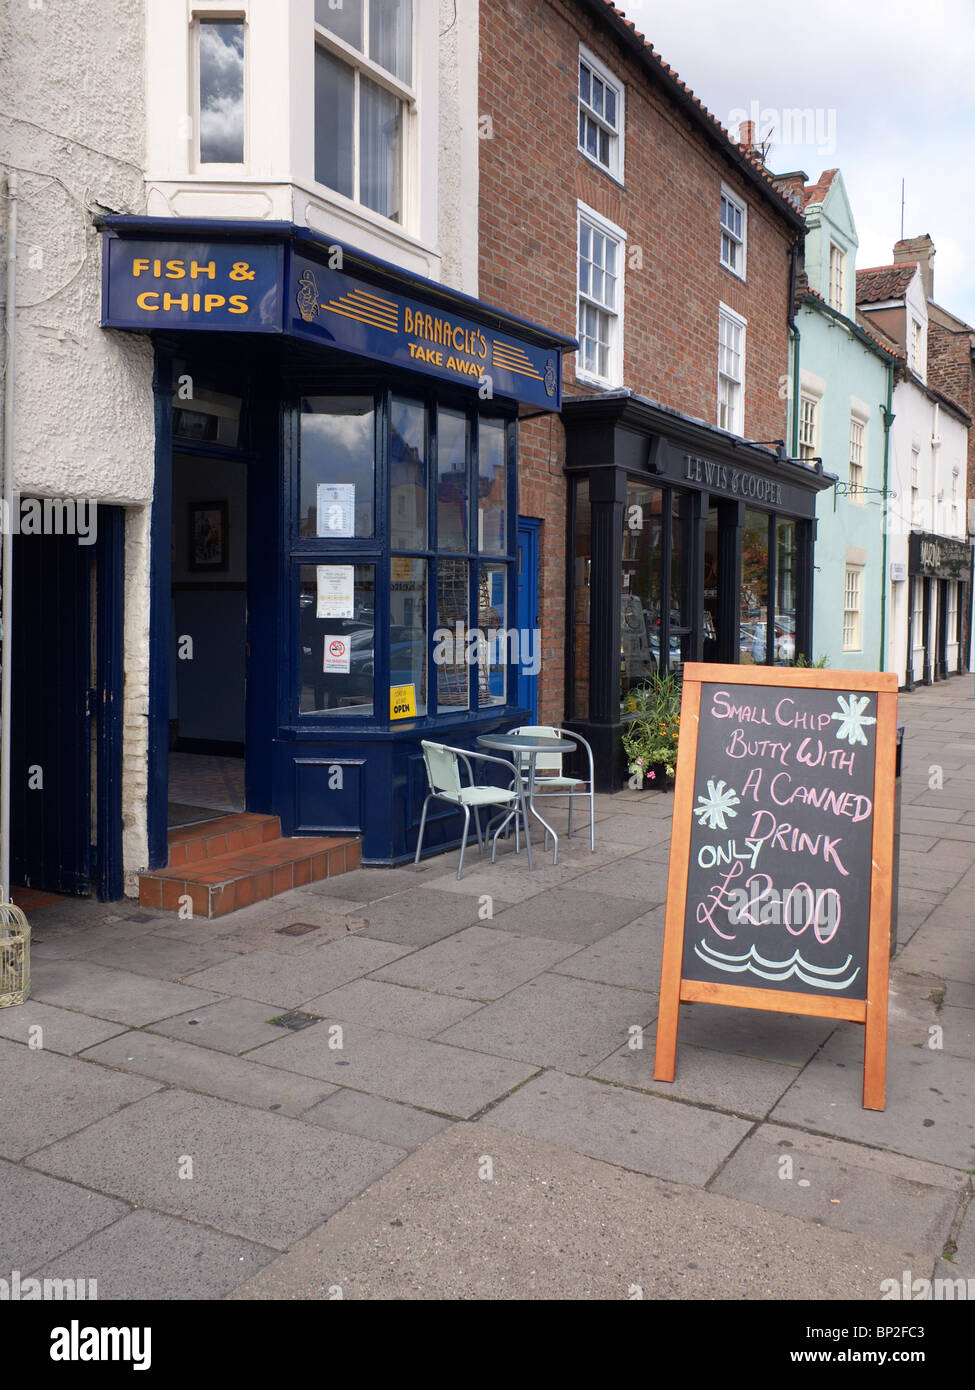 Fish and Chip shop in Yarm High Street with a sign for 'Chip Butty and a canned drink' - Stock Image